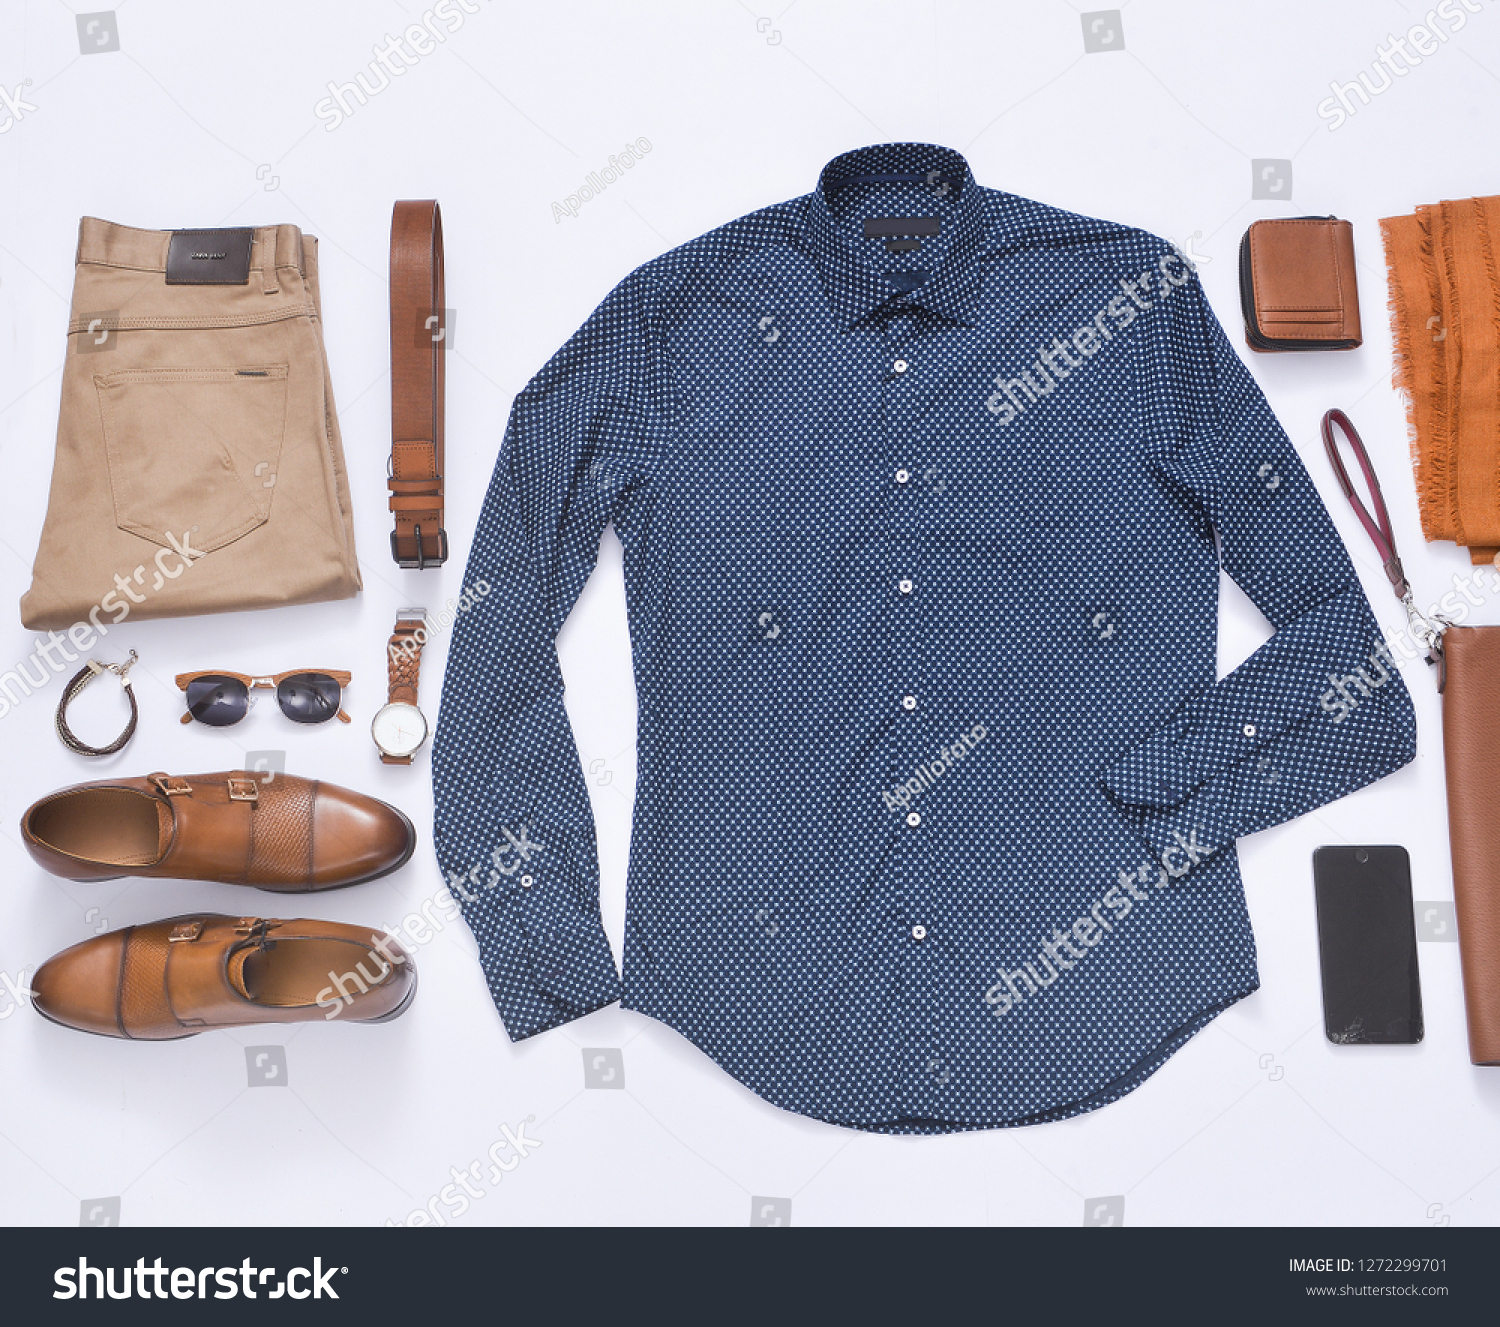 968879adb4e8 Men's casual outfit. Men's fashion clothing and accessories on white  background, flat lay